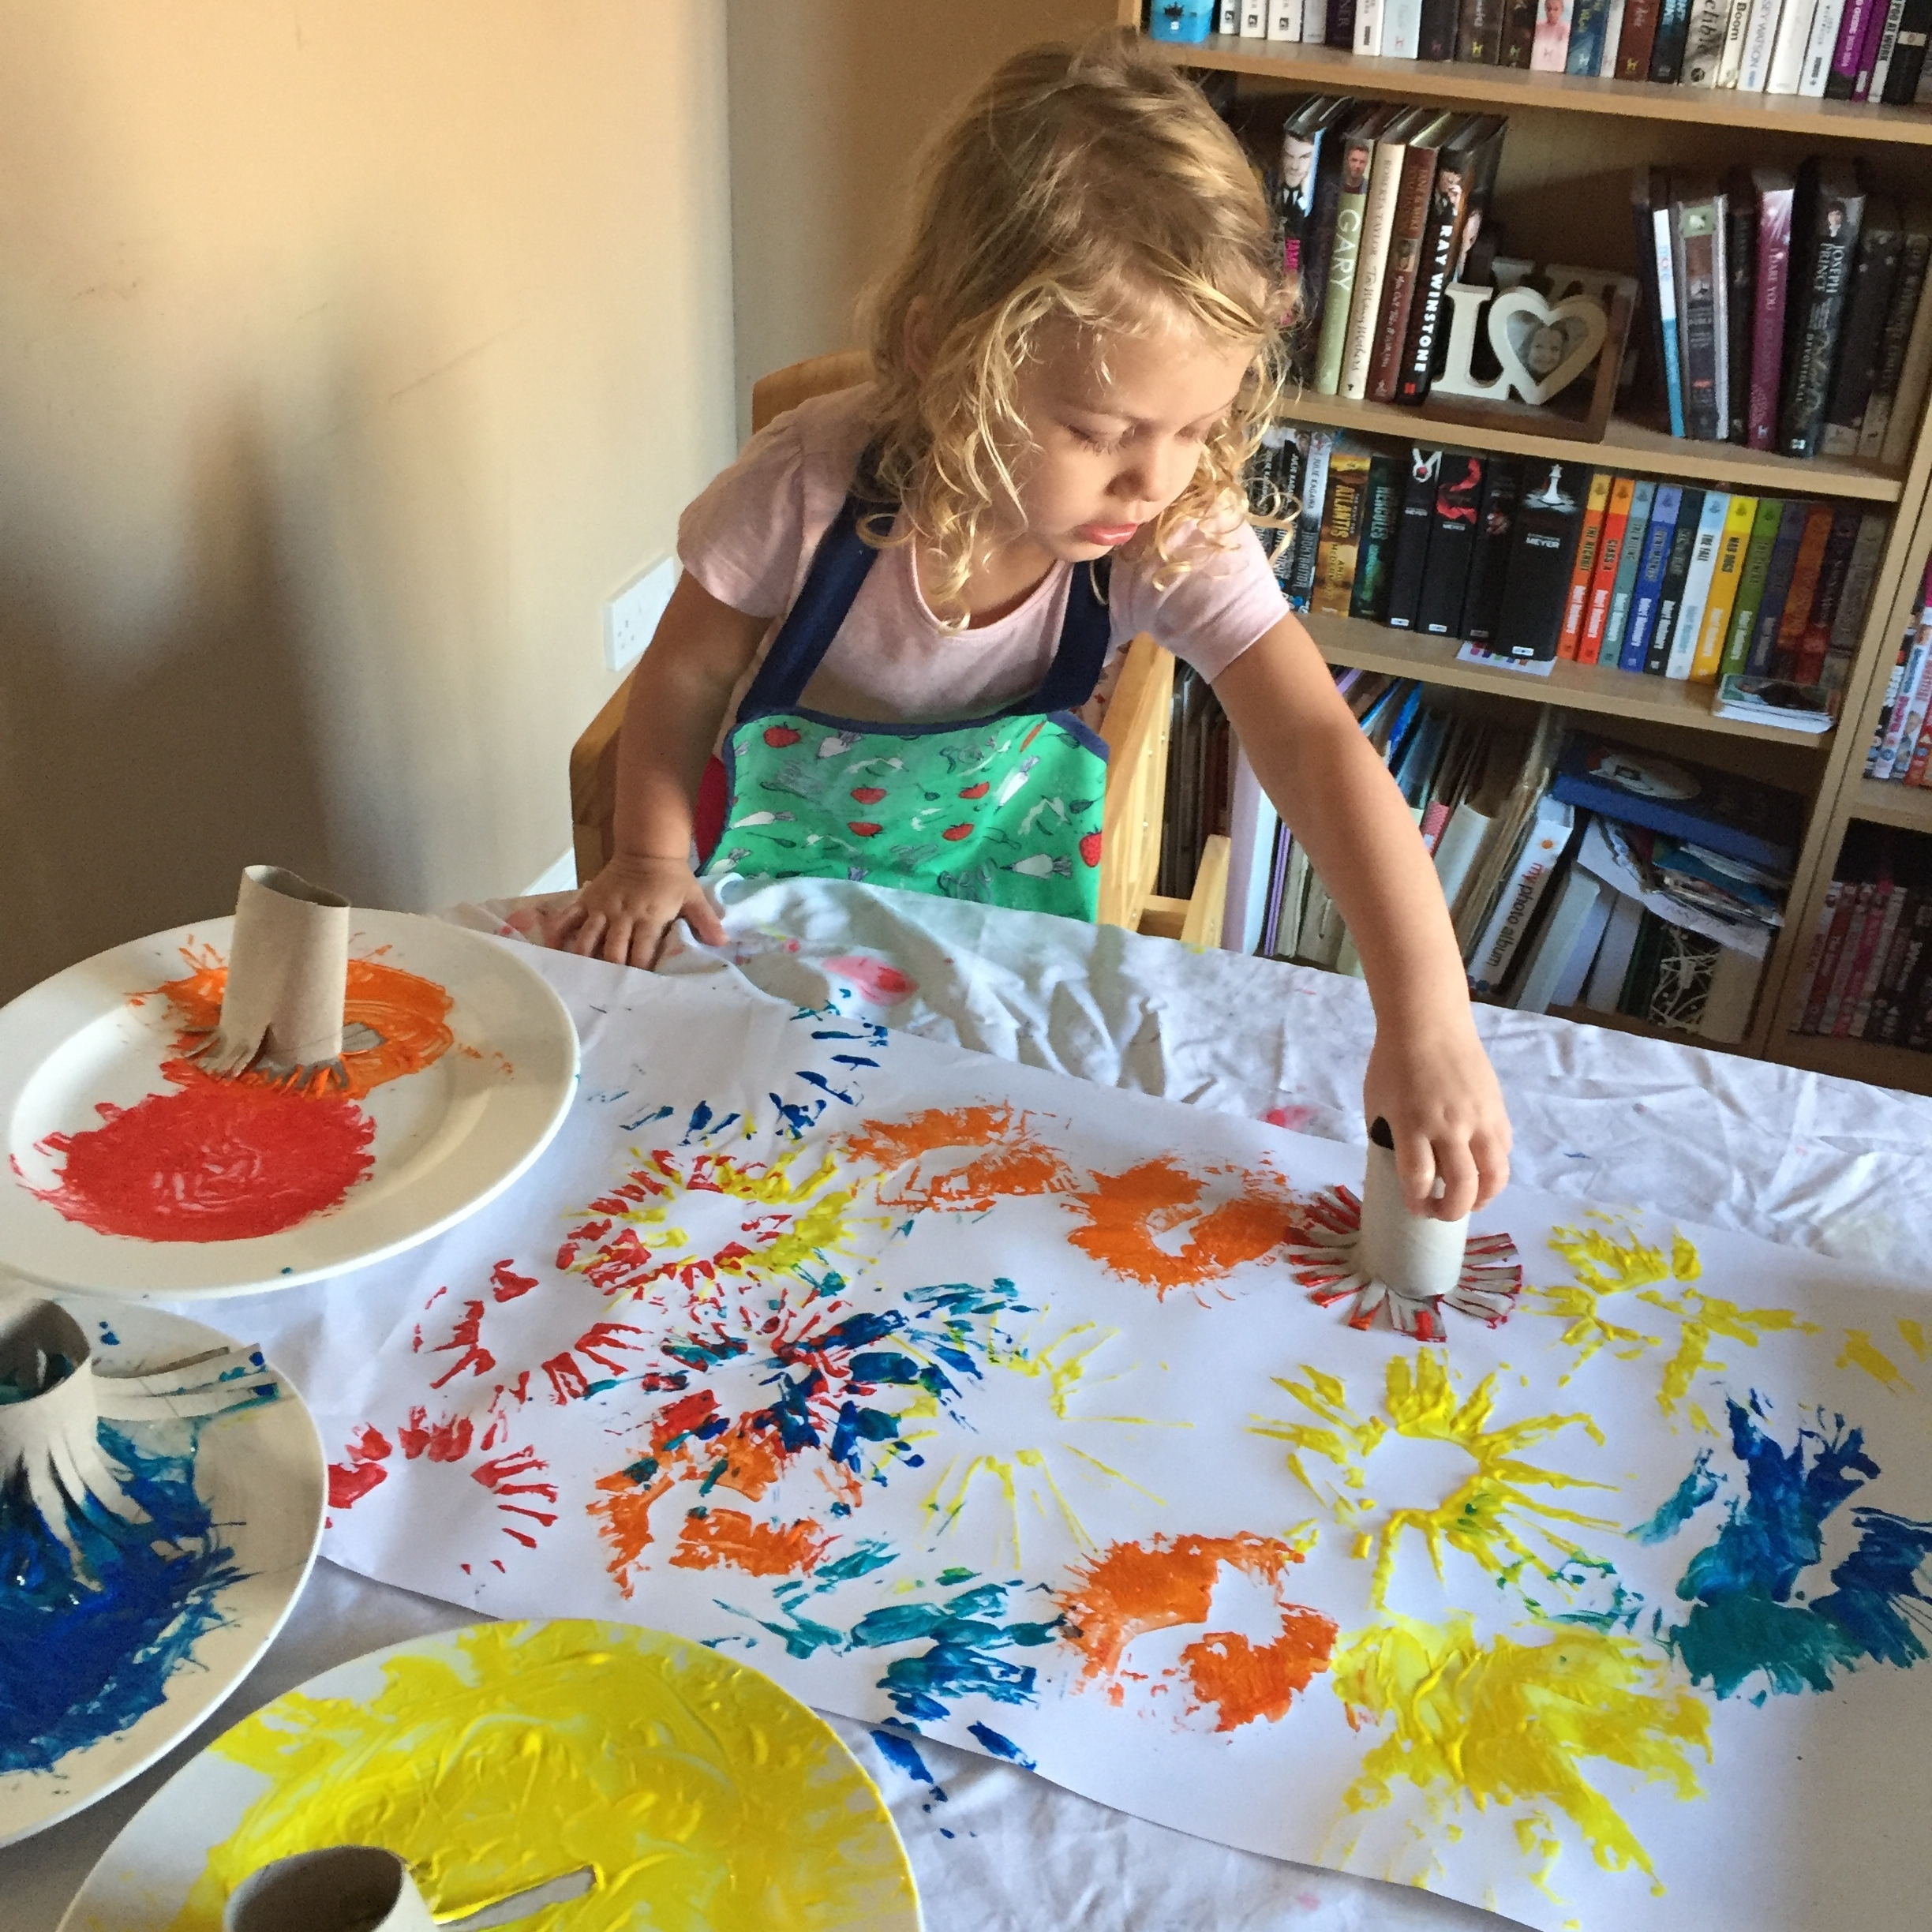 Fireworks painting craft ideas for Bonfire Night